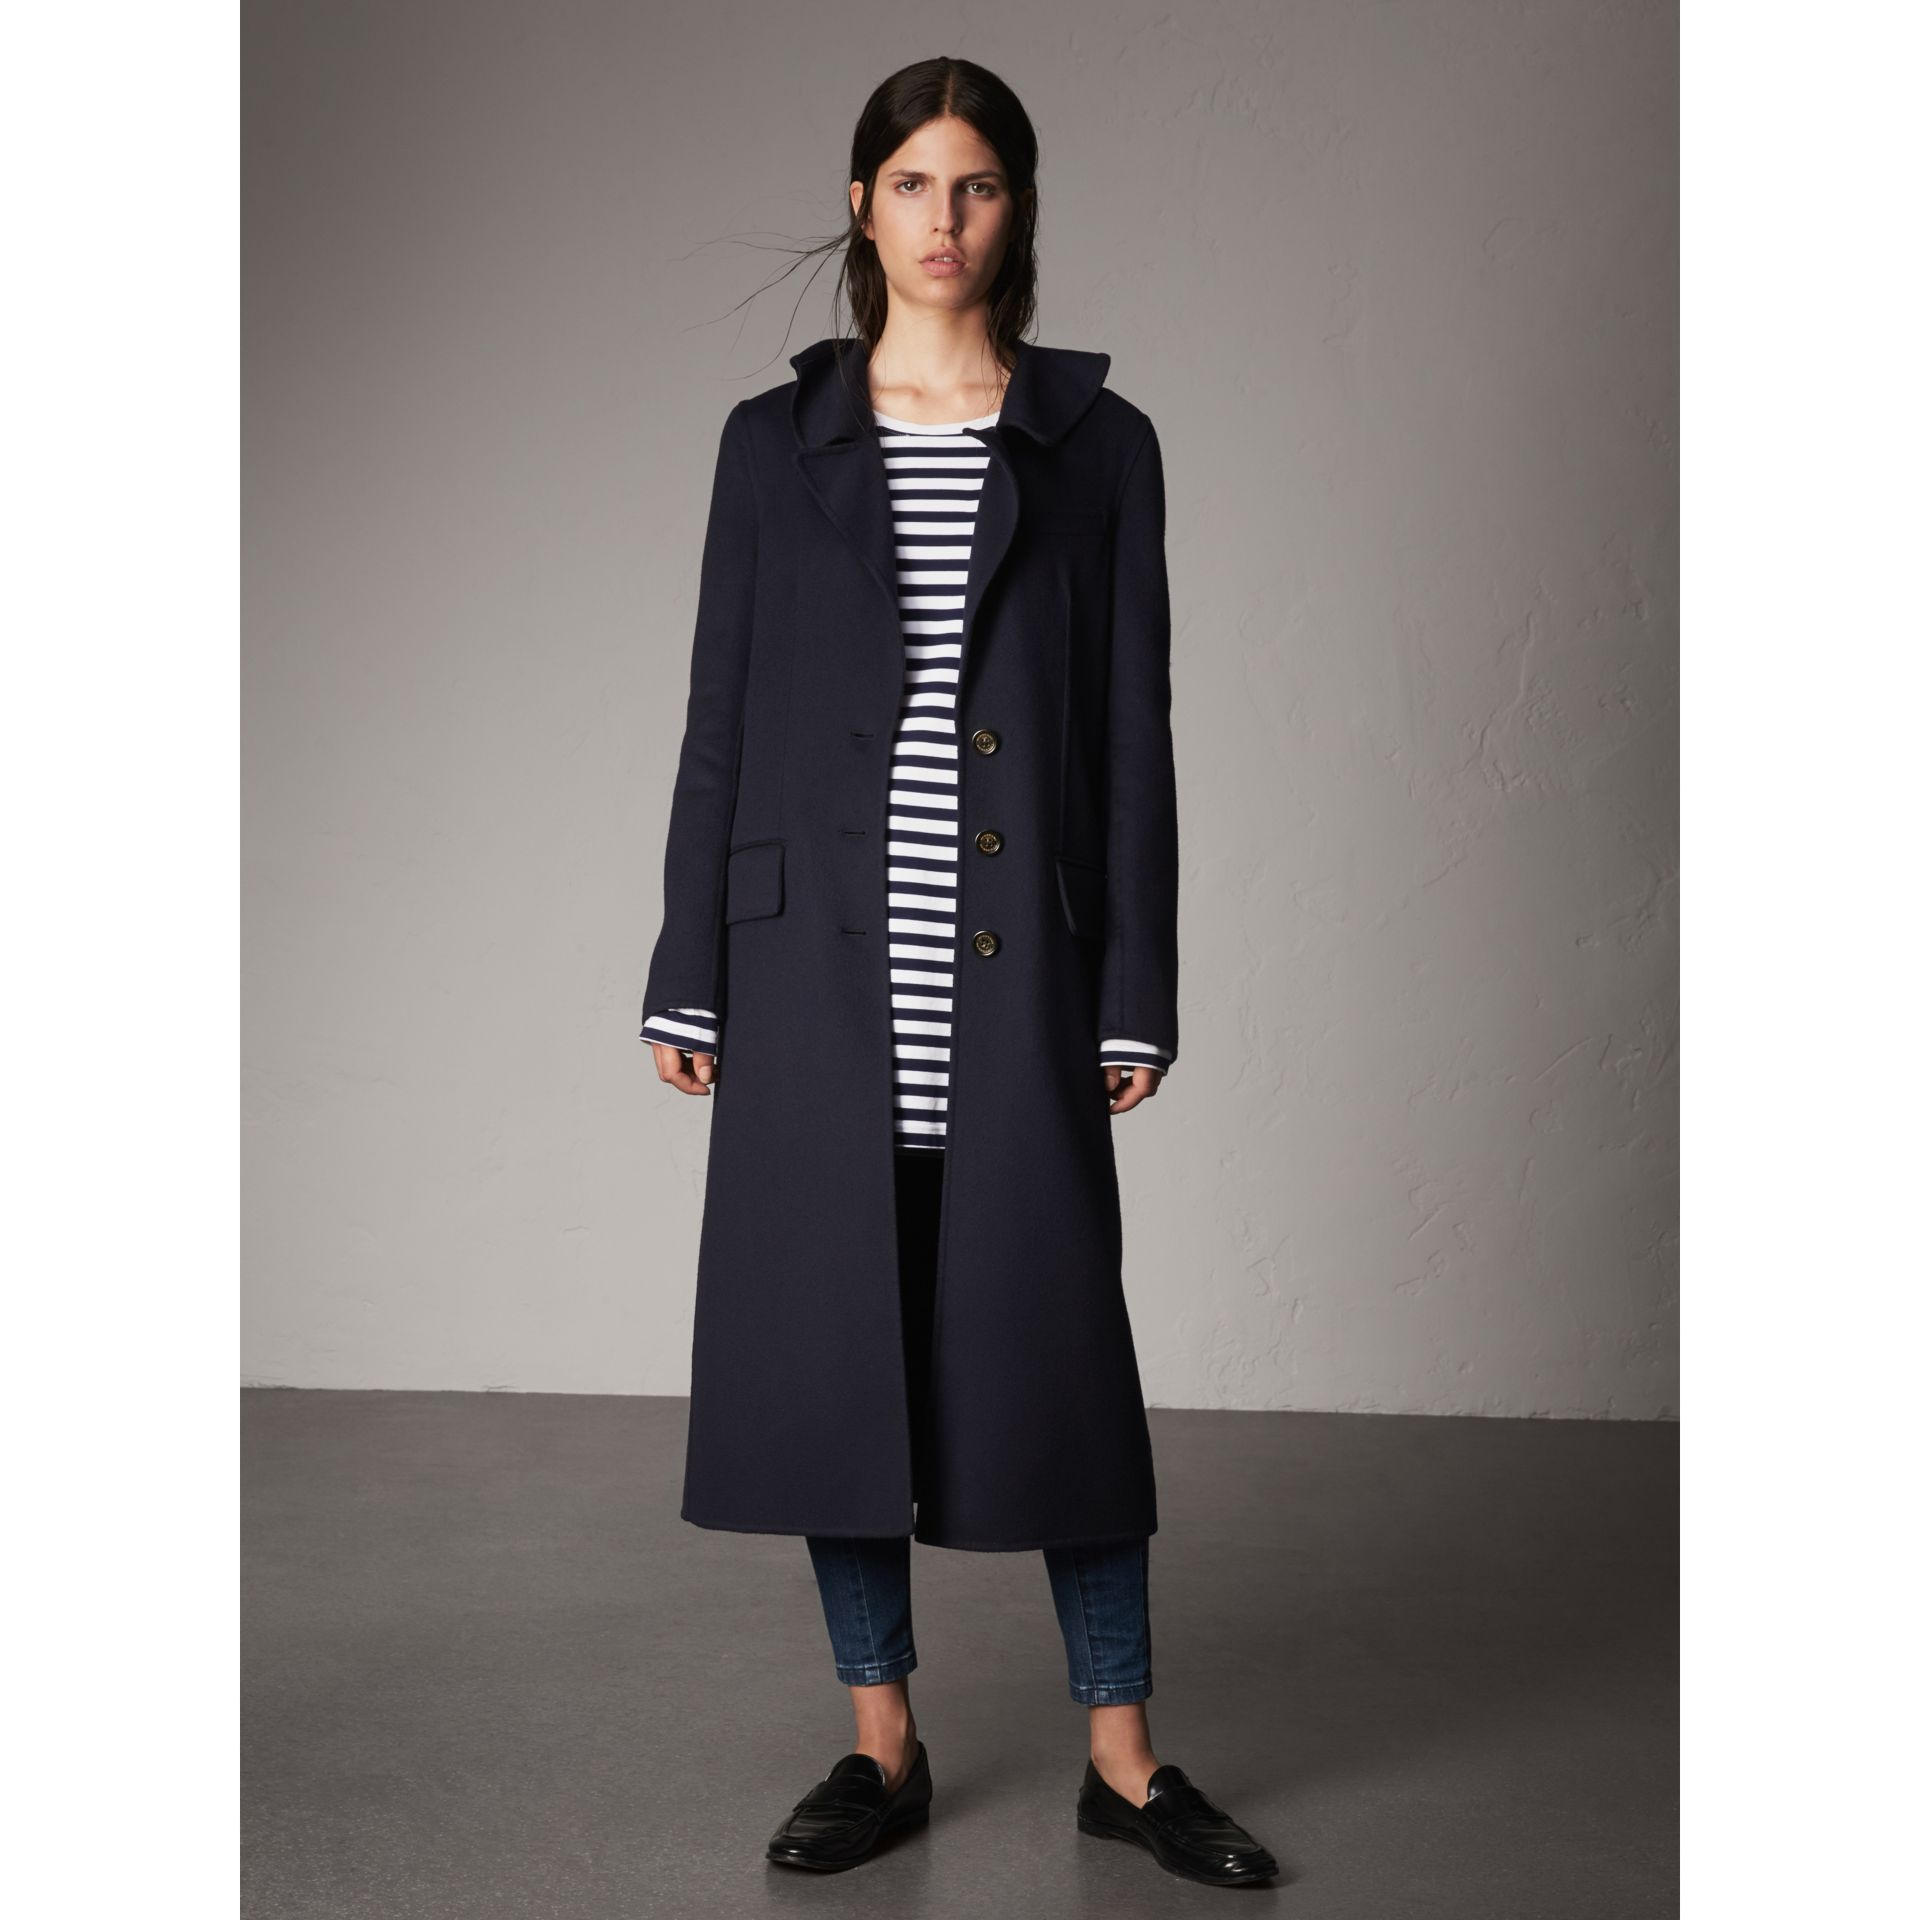 Ruffled Collar Wool Cashmere Coat in Navy - Women | Burberry Singapore - gallery image 1